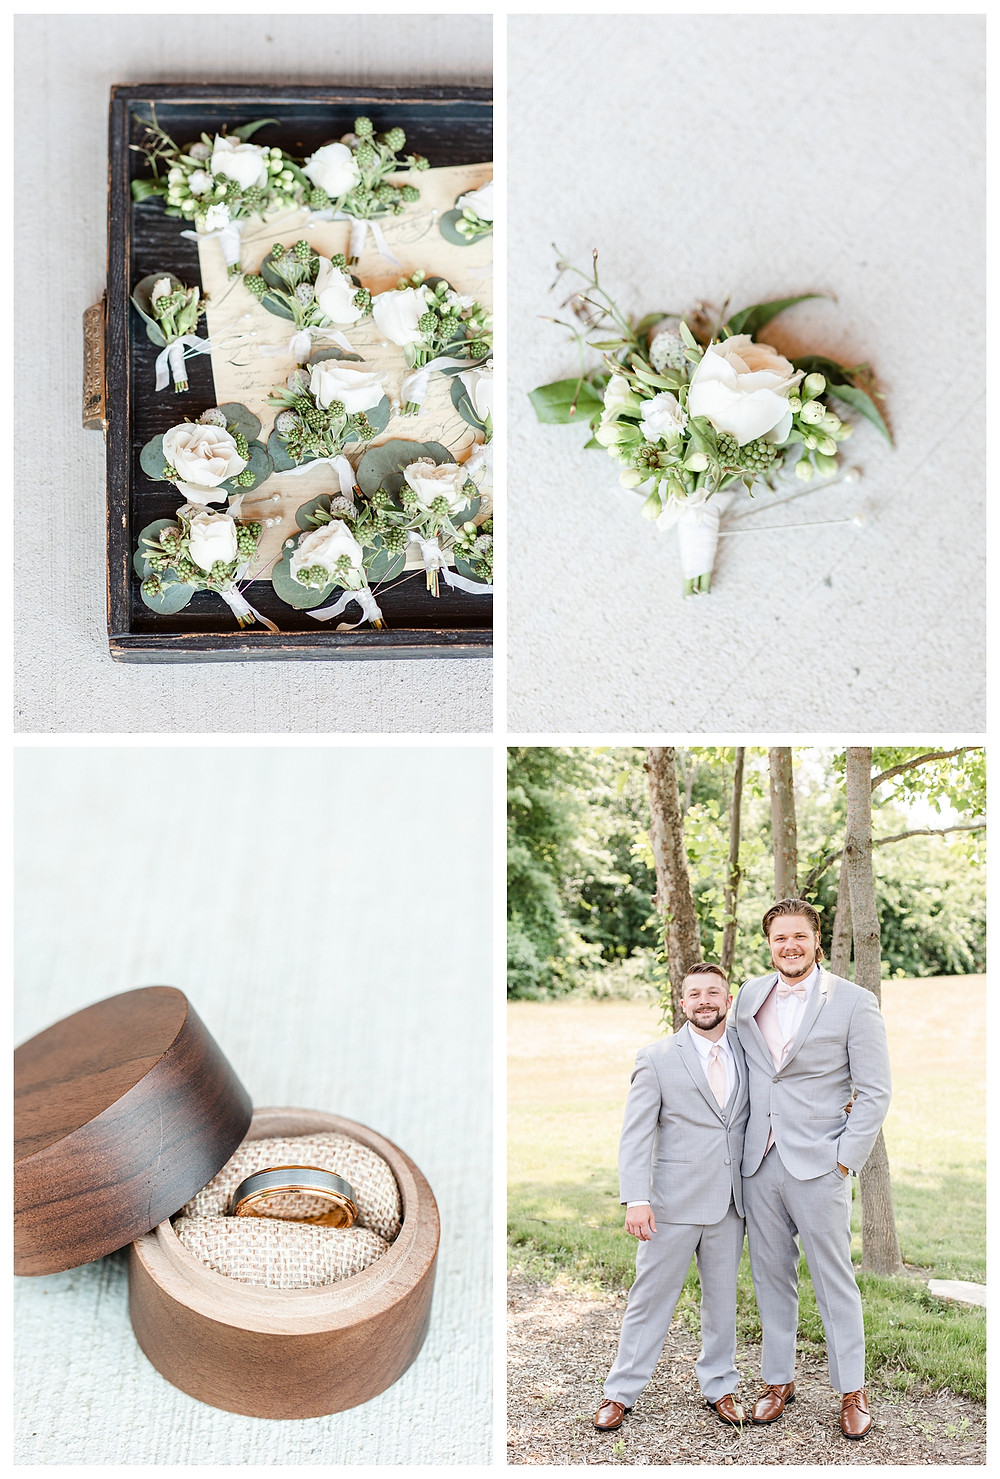 Josh and Andrea light airy joyful style wedding photography husband and wife photographer team michigan pictures photo shoot poses spring bride and groom White Oak Farm Venue florals rings